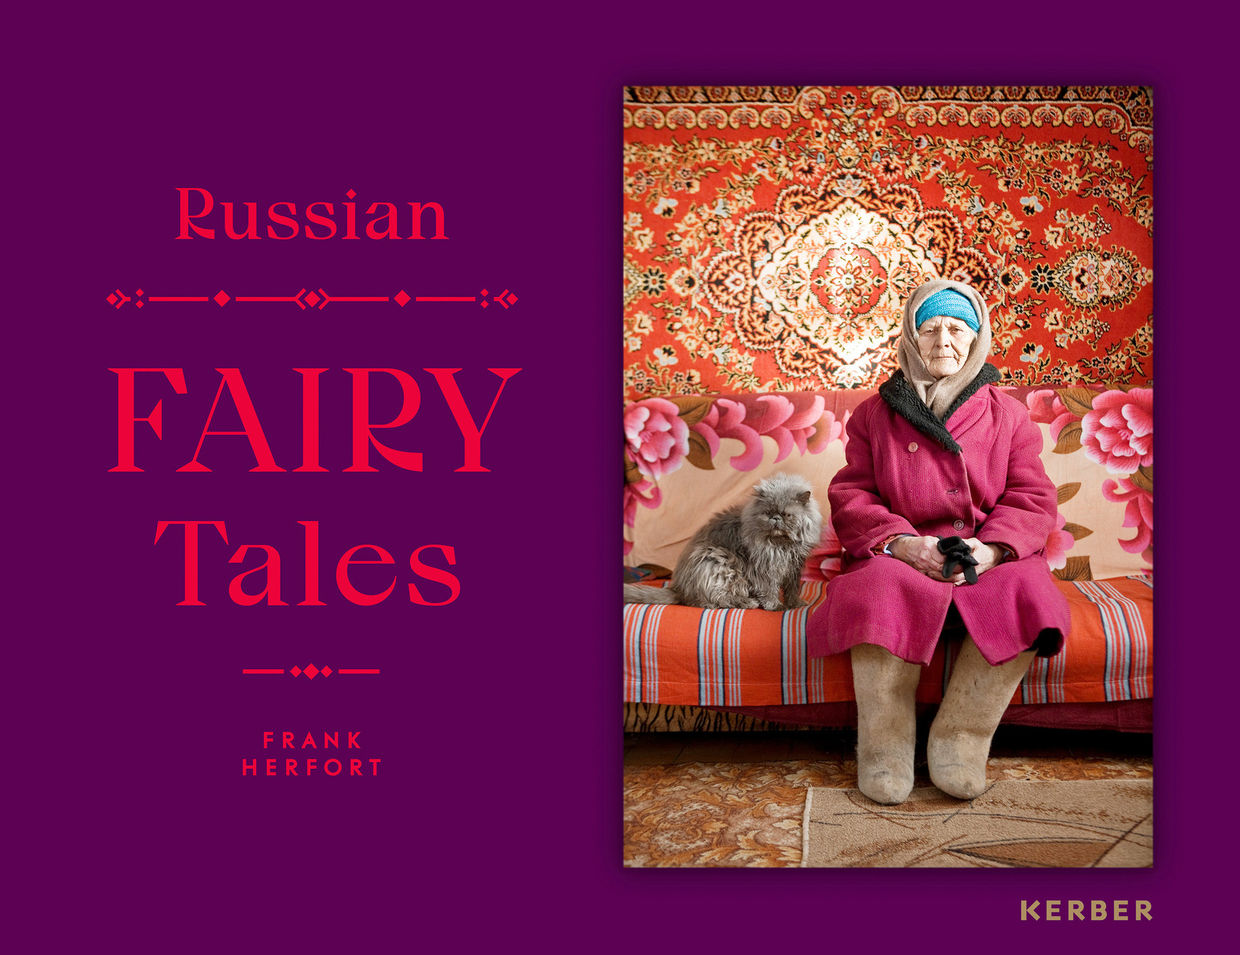 'Russian Fairytales' by Frank Herfort